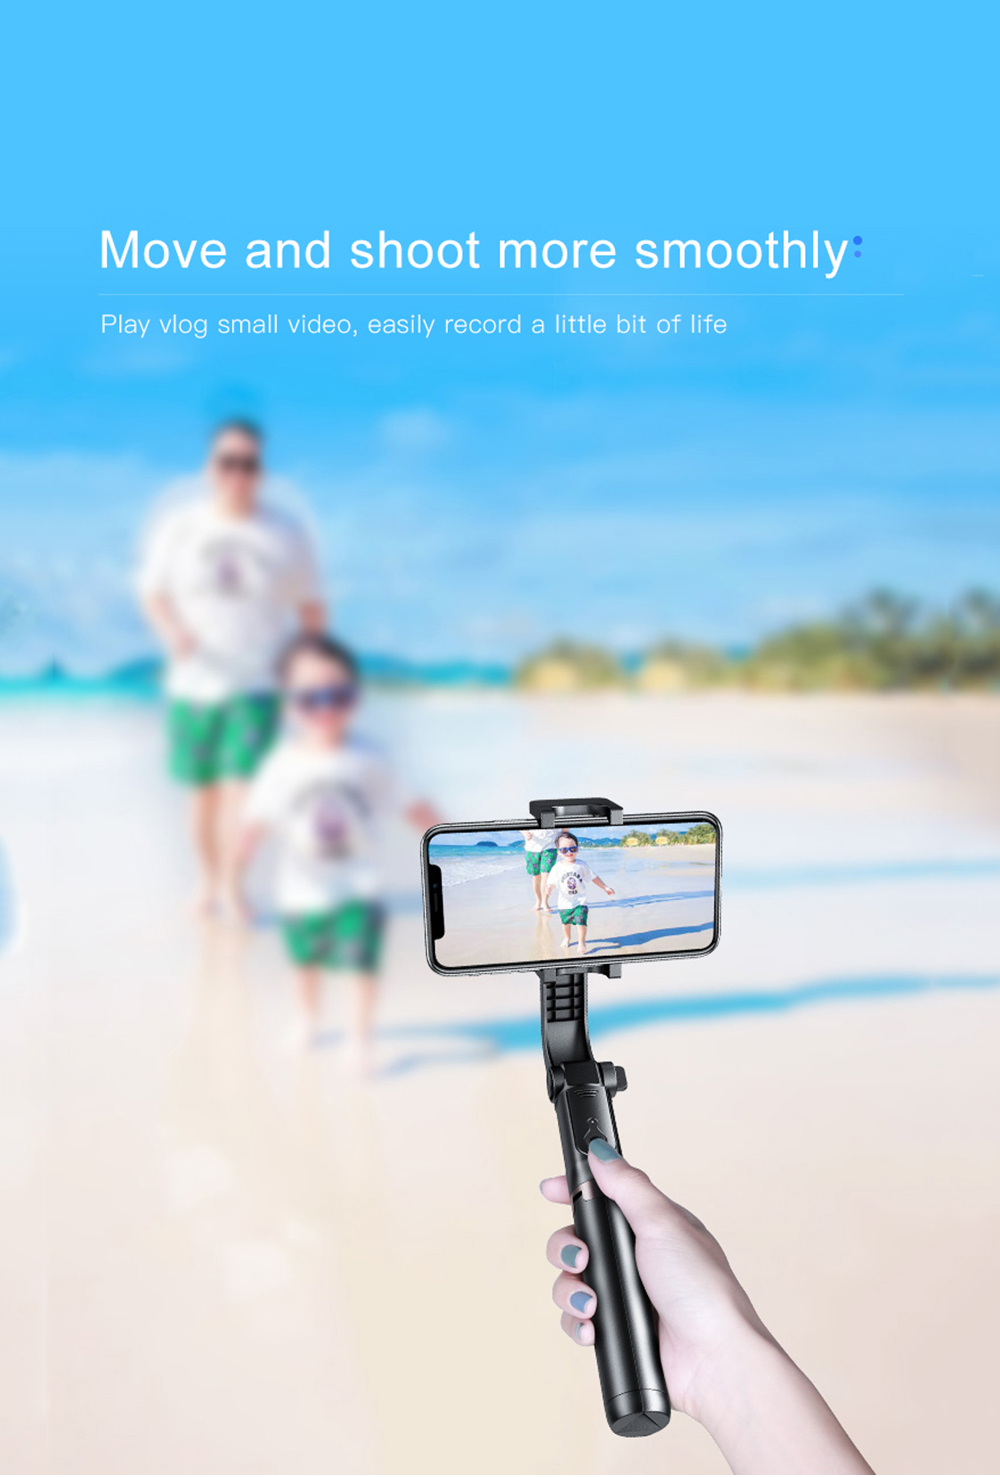 Bonola 3 in1 Handheld Gimbal Stabilizer Smartphone Selfie Stick Tripod For iOSAndroid Video Stabilizer For iPhone11ProSamsung (5)